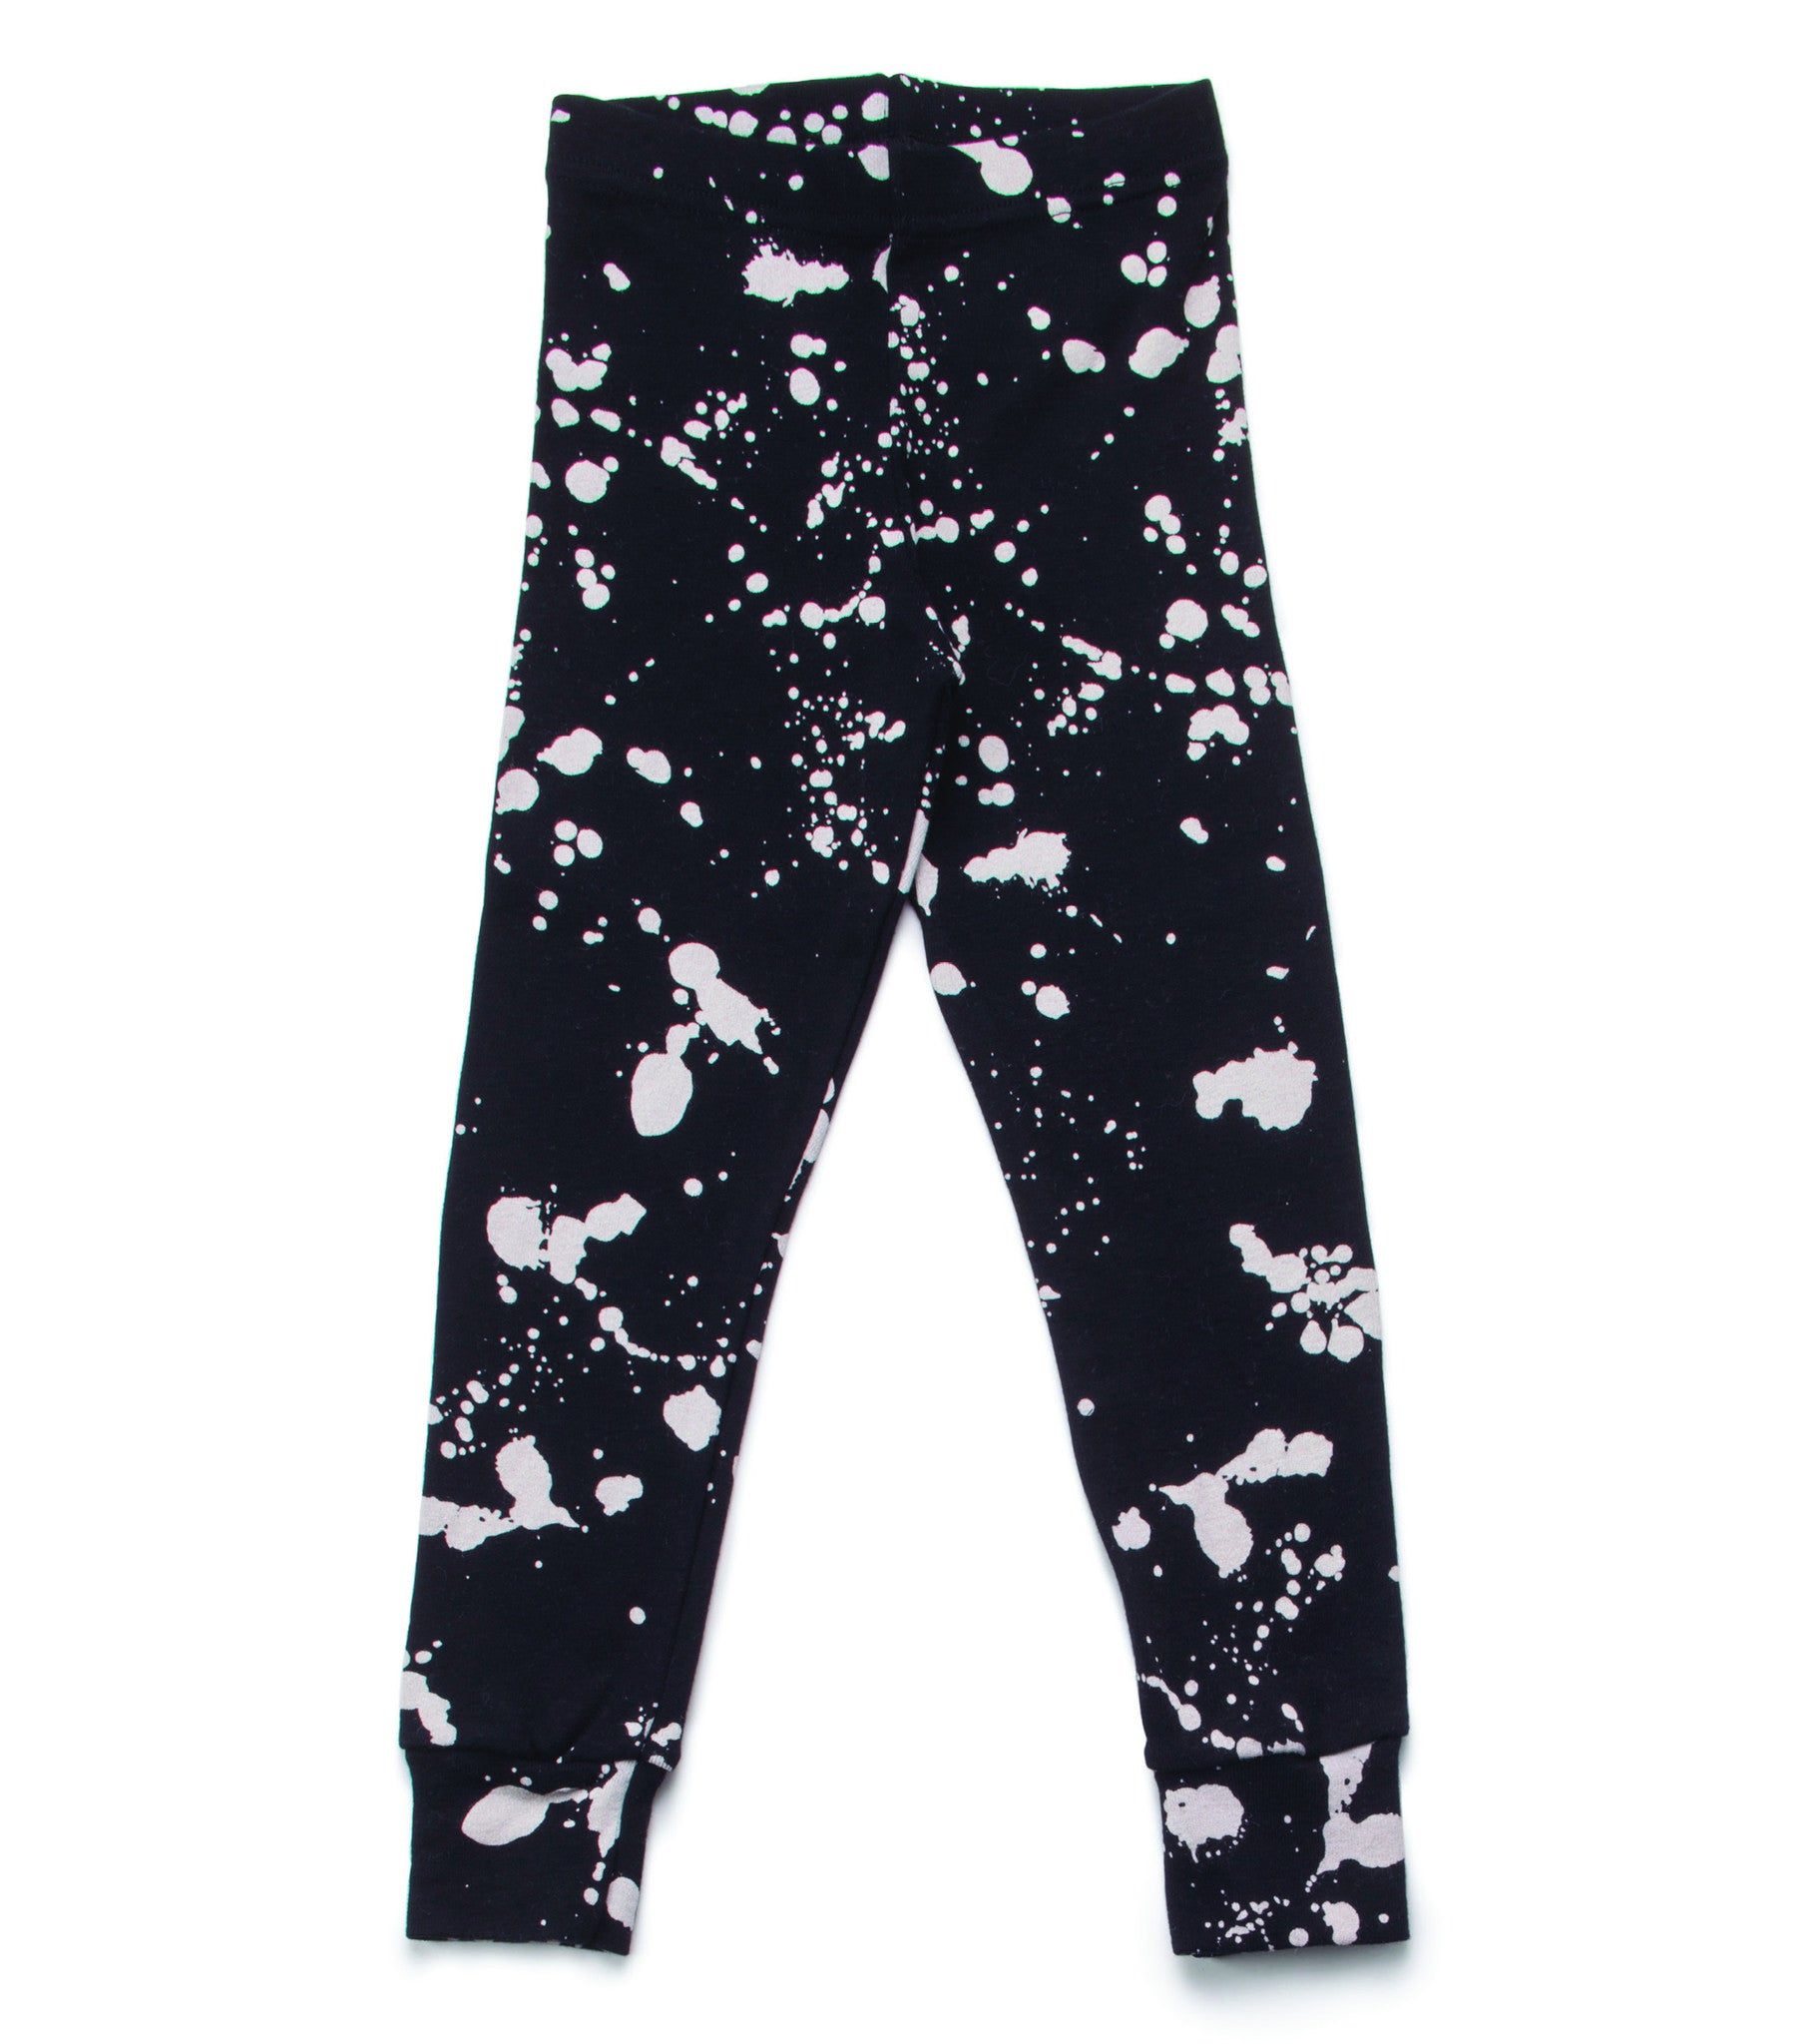 NUNUNU Black Splash Leggings - Ladida